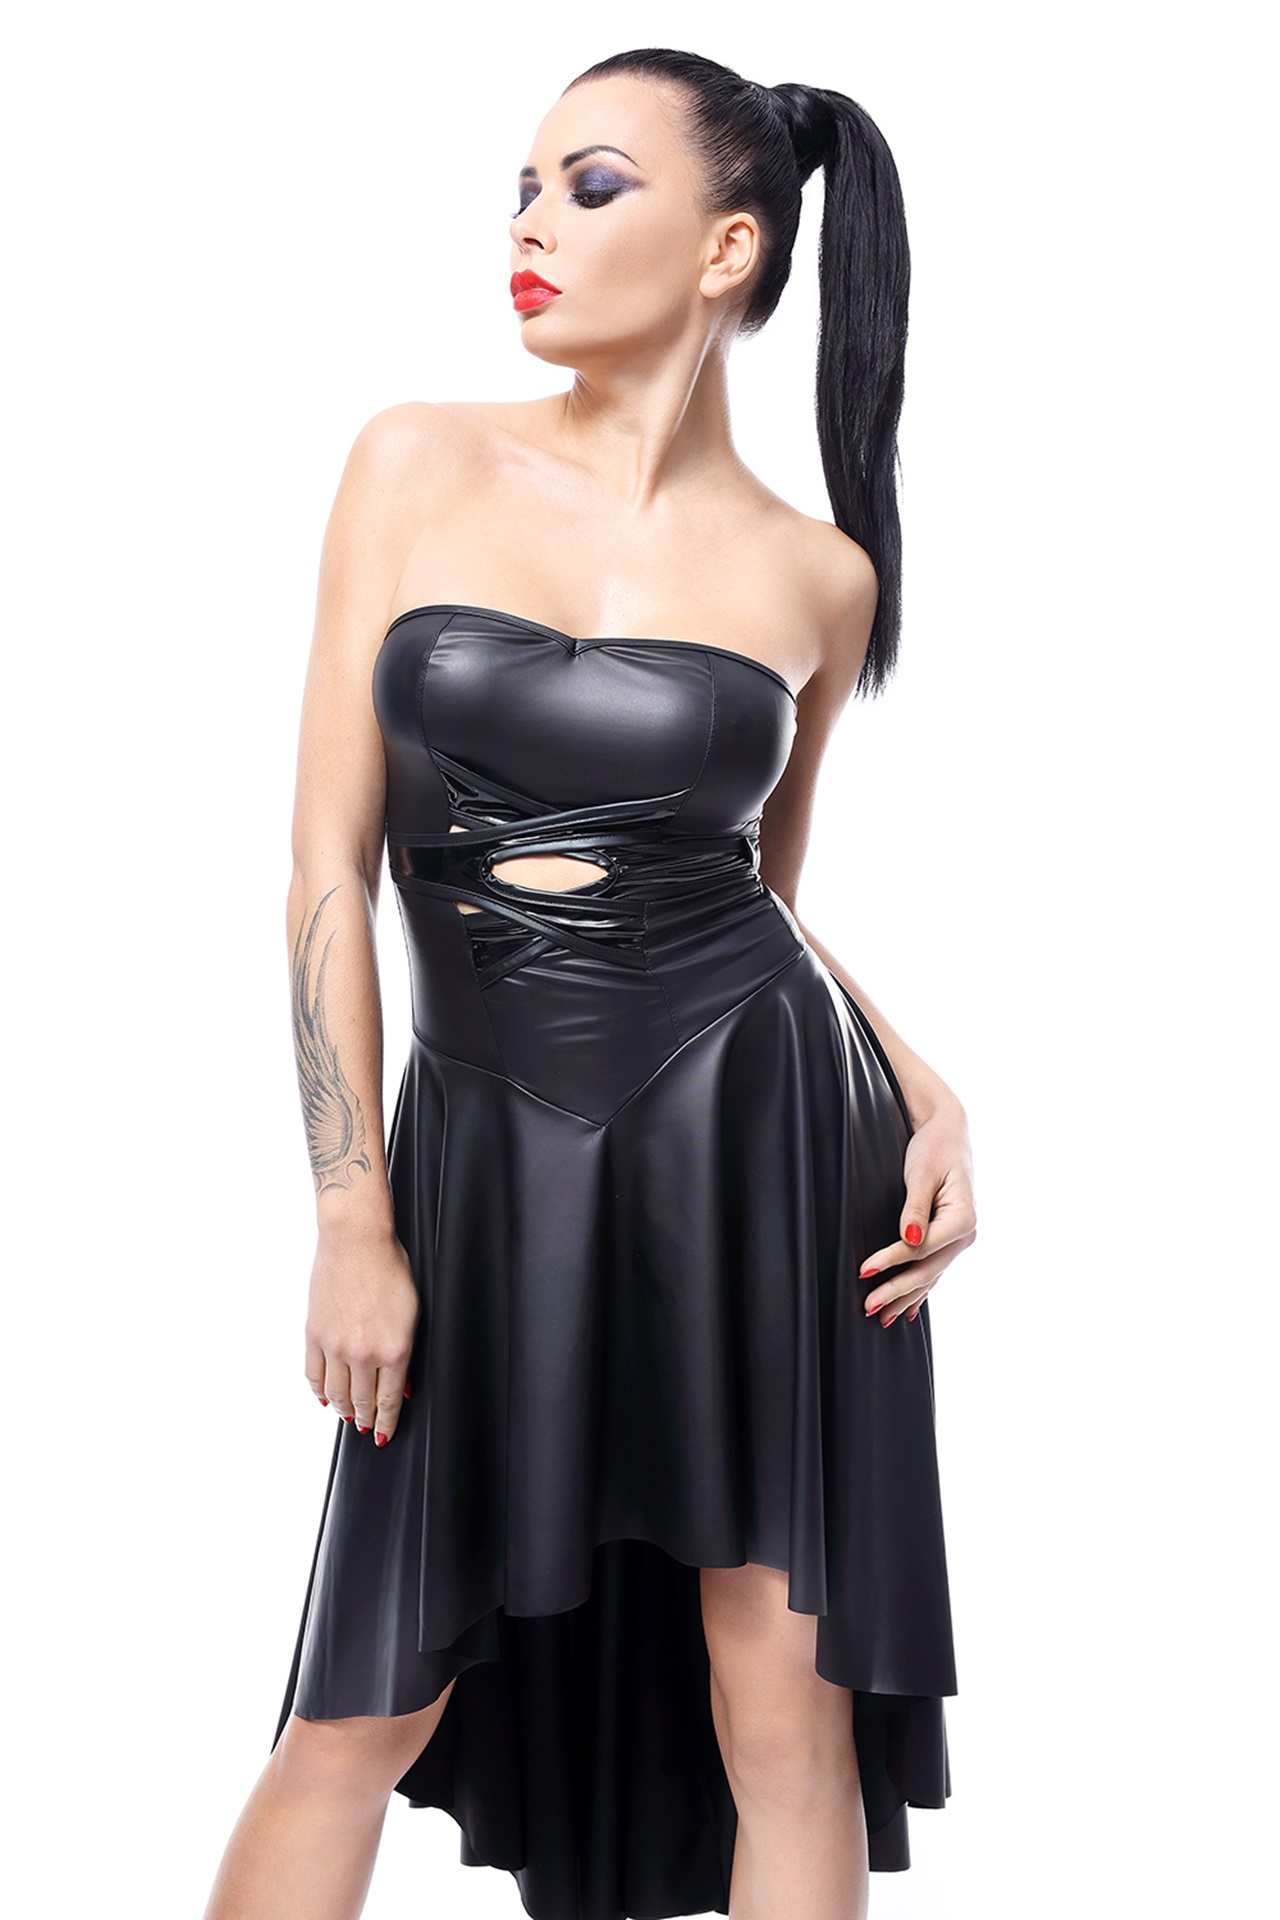 DE438 schwarzes Kleid von Demoniq Hard Candy Collection EAN: 5902767394390